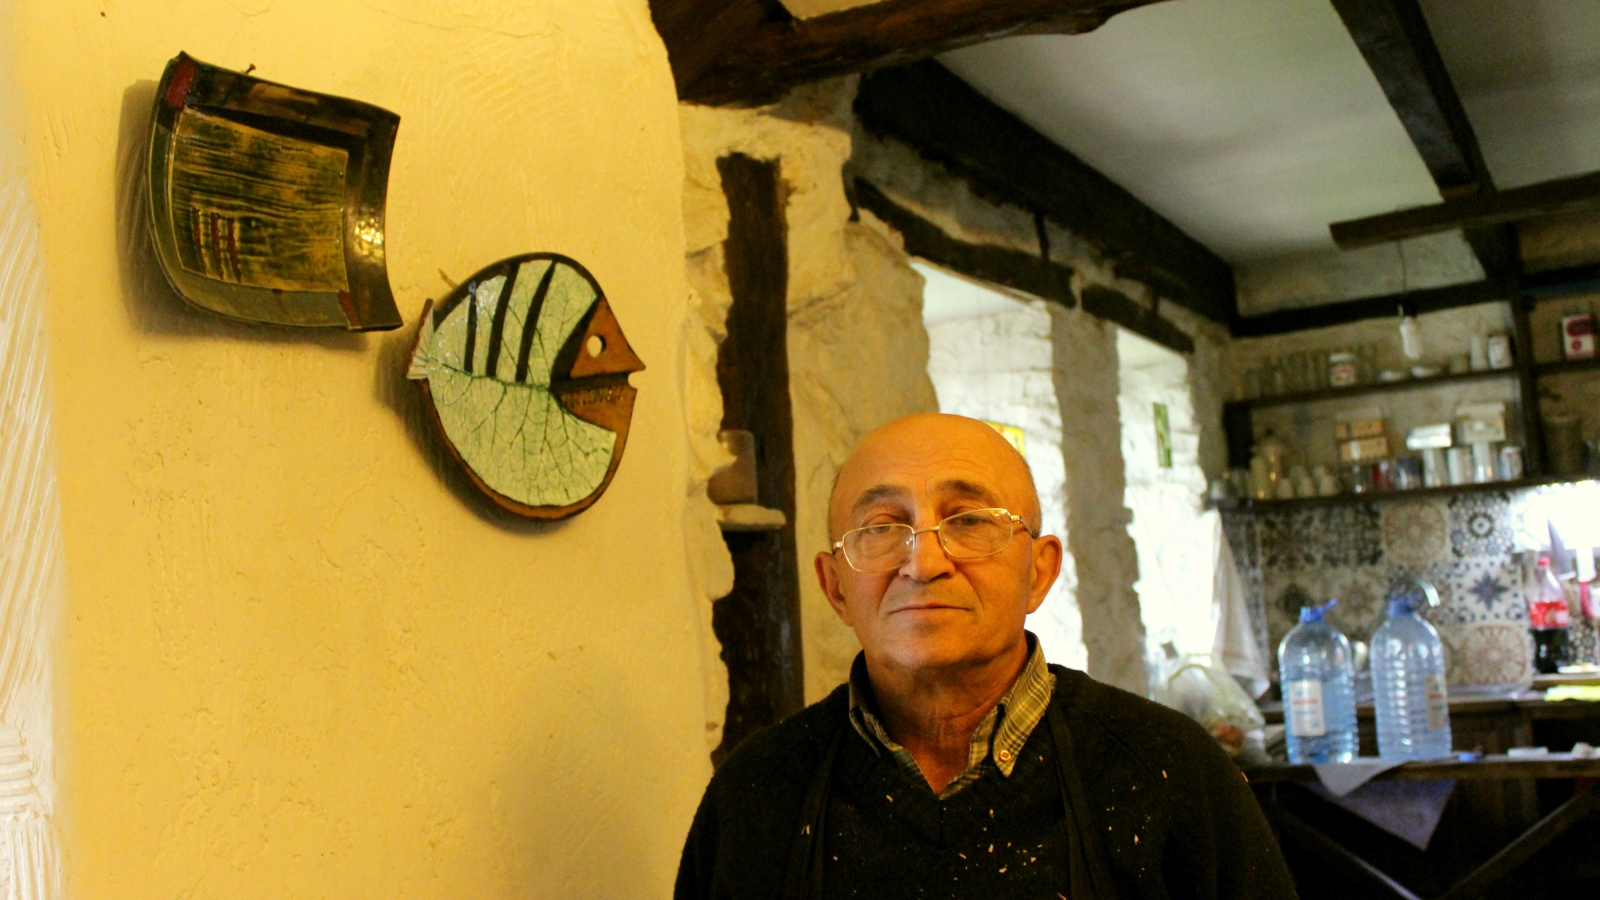 Ceramist Otar Sharabidze his pottery works on the background in his house in Tetritskaro